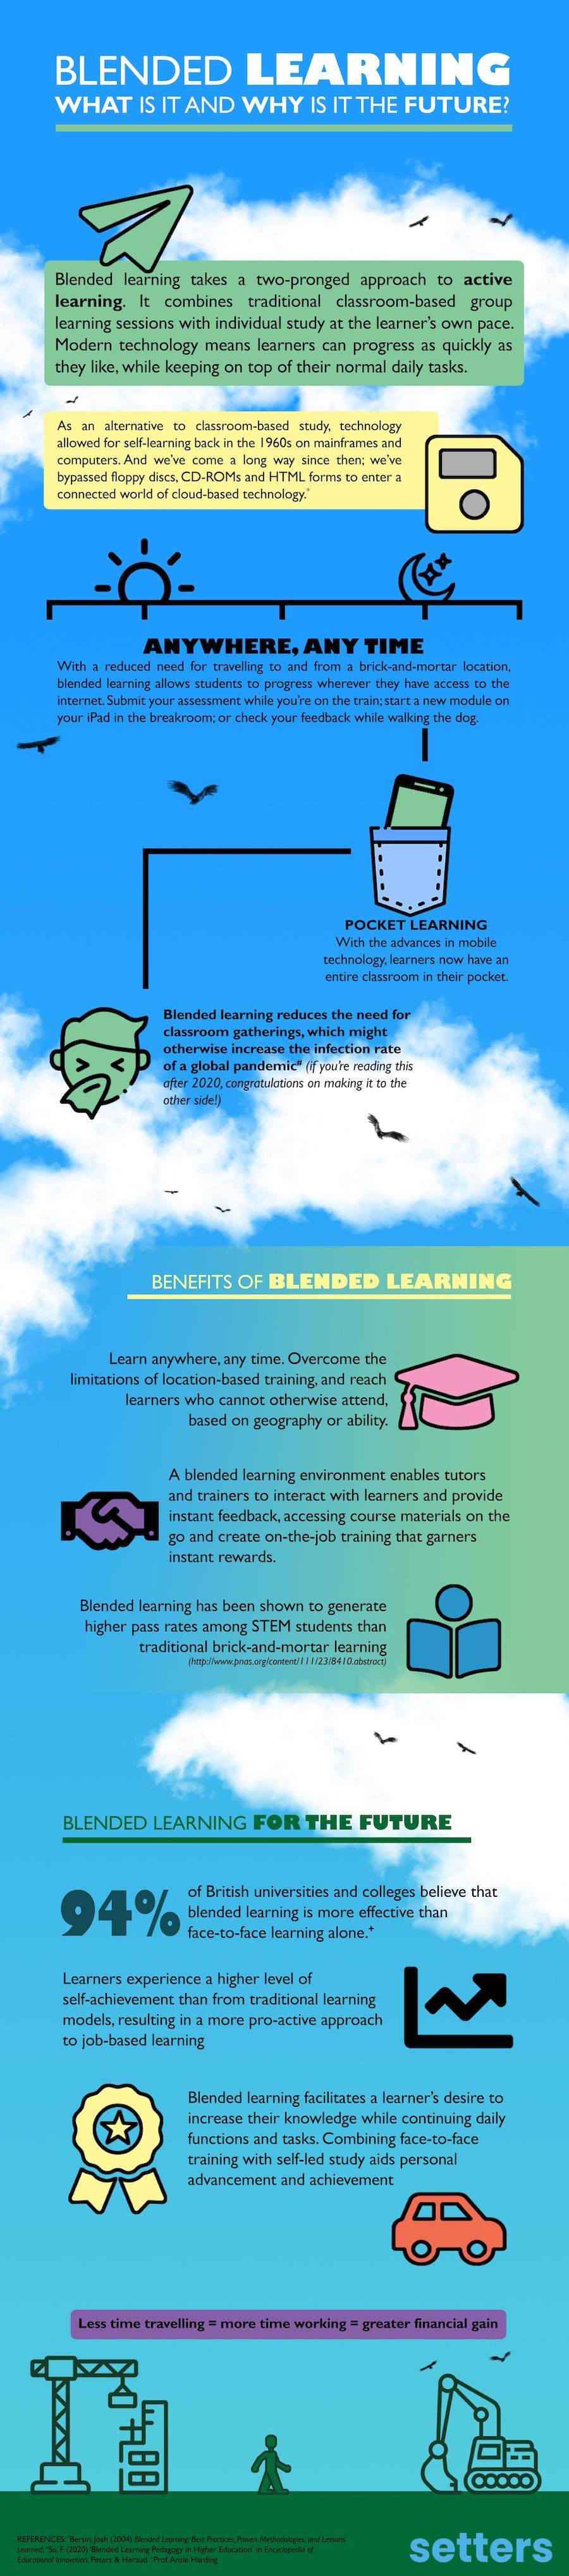 A visual graphic describing and explaining blended learning.